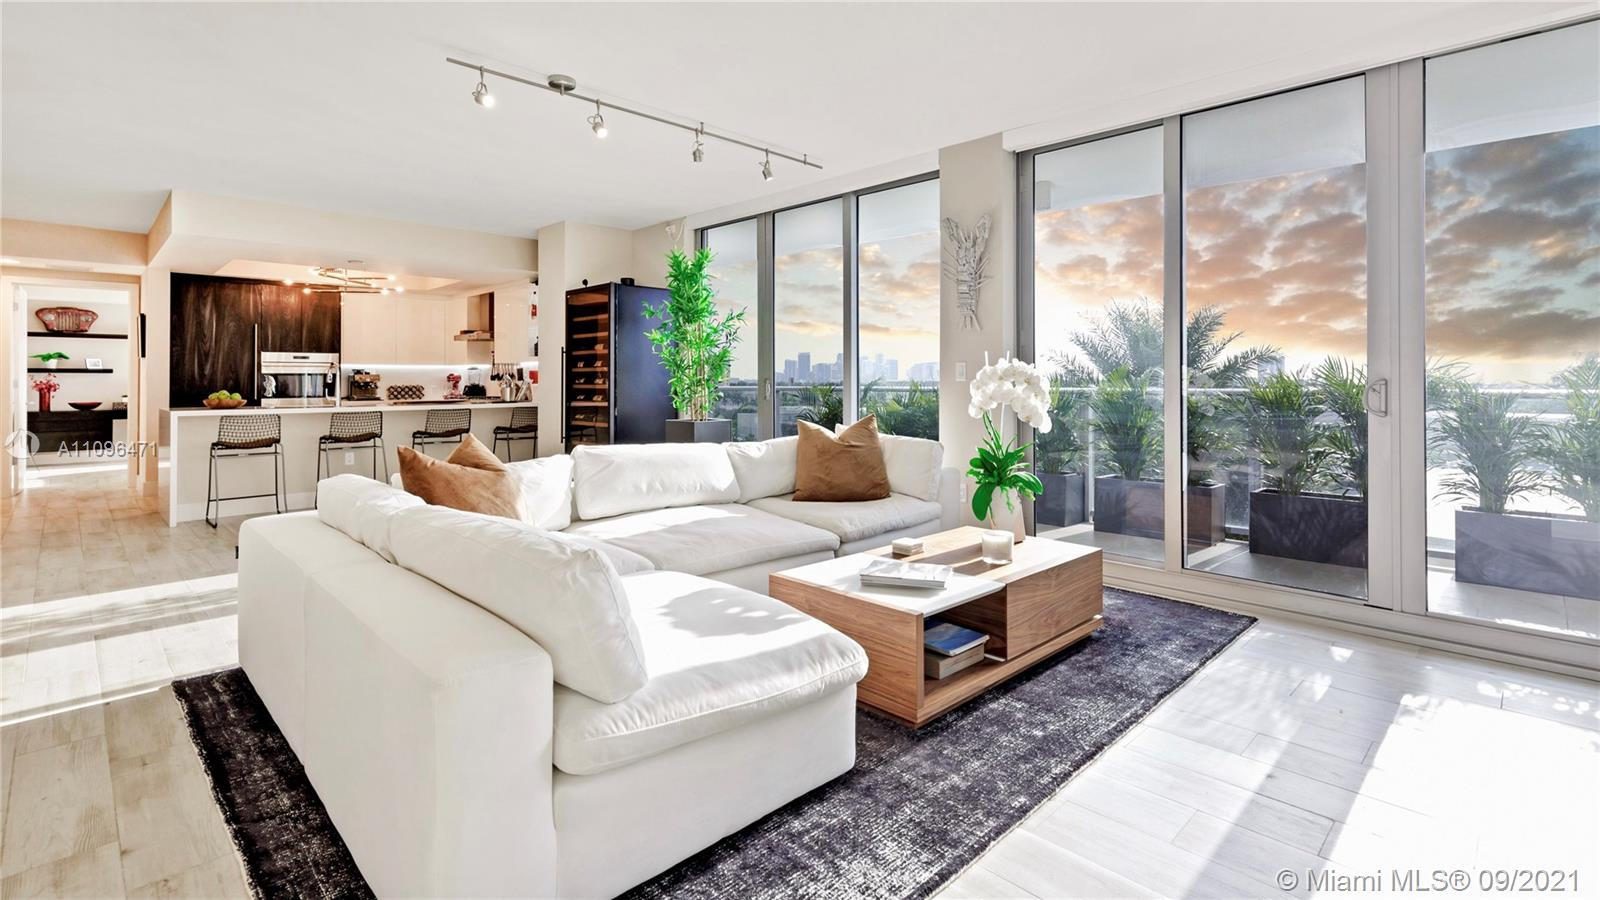 Exquisite 2 Bedroom, 2.5 Bathroom Offered Fully Furnished & Decorated with Panoramic Skyline & Sunse